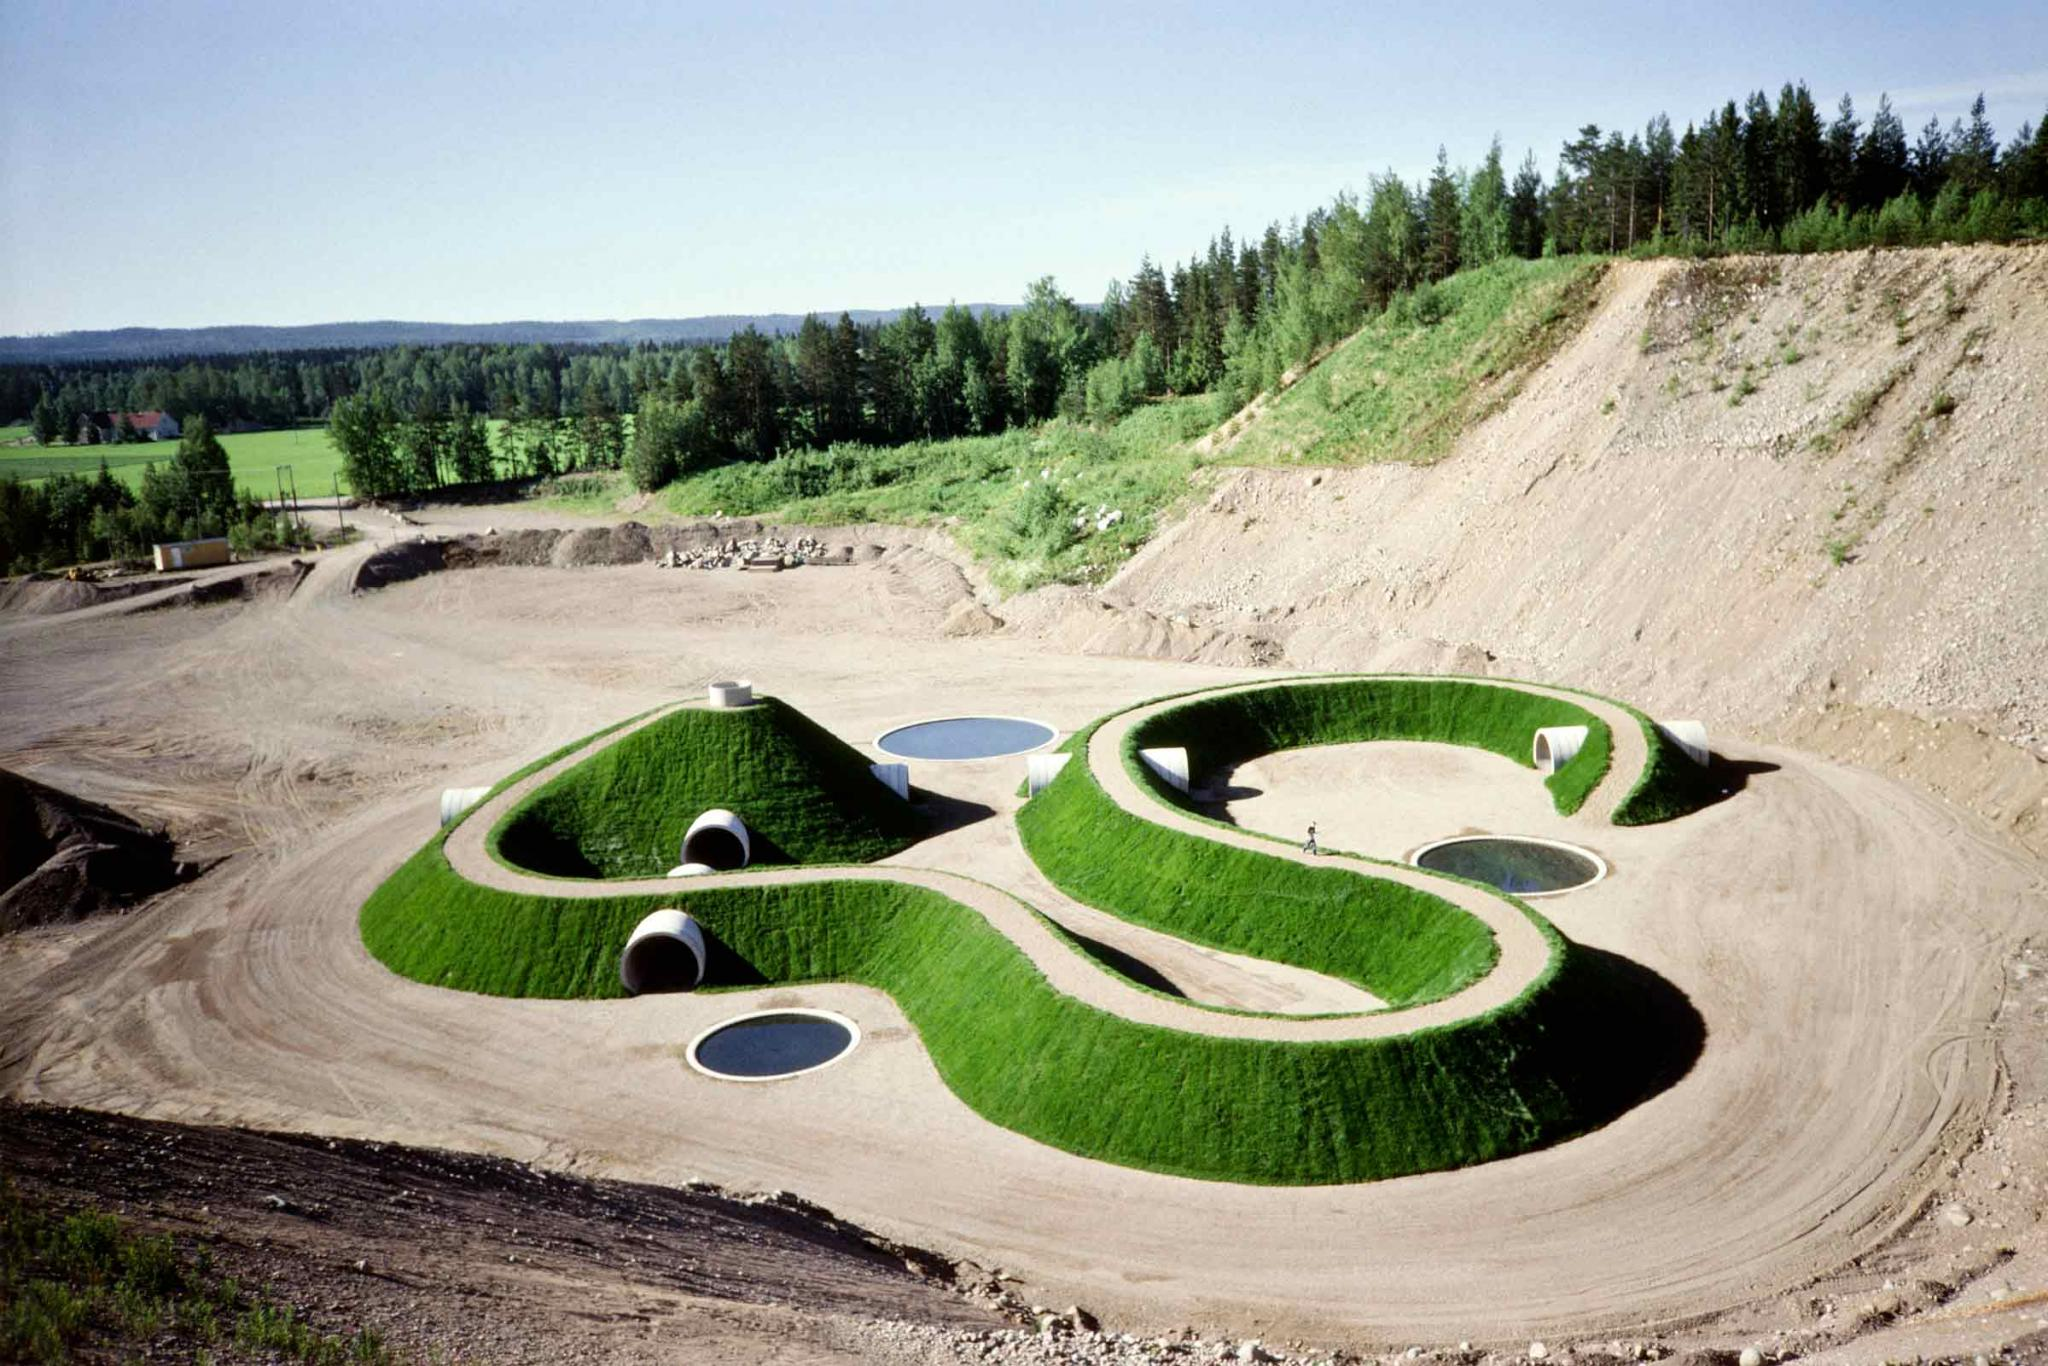 a curving mound of earth with tunnels and pathways throughout